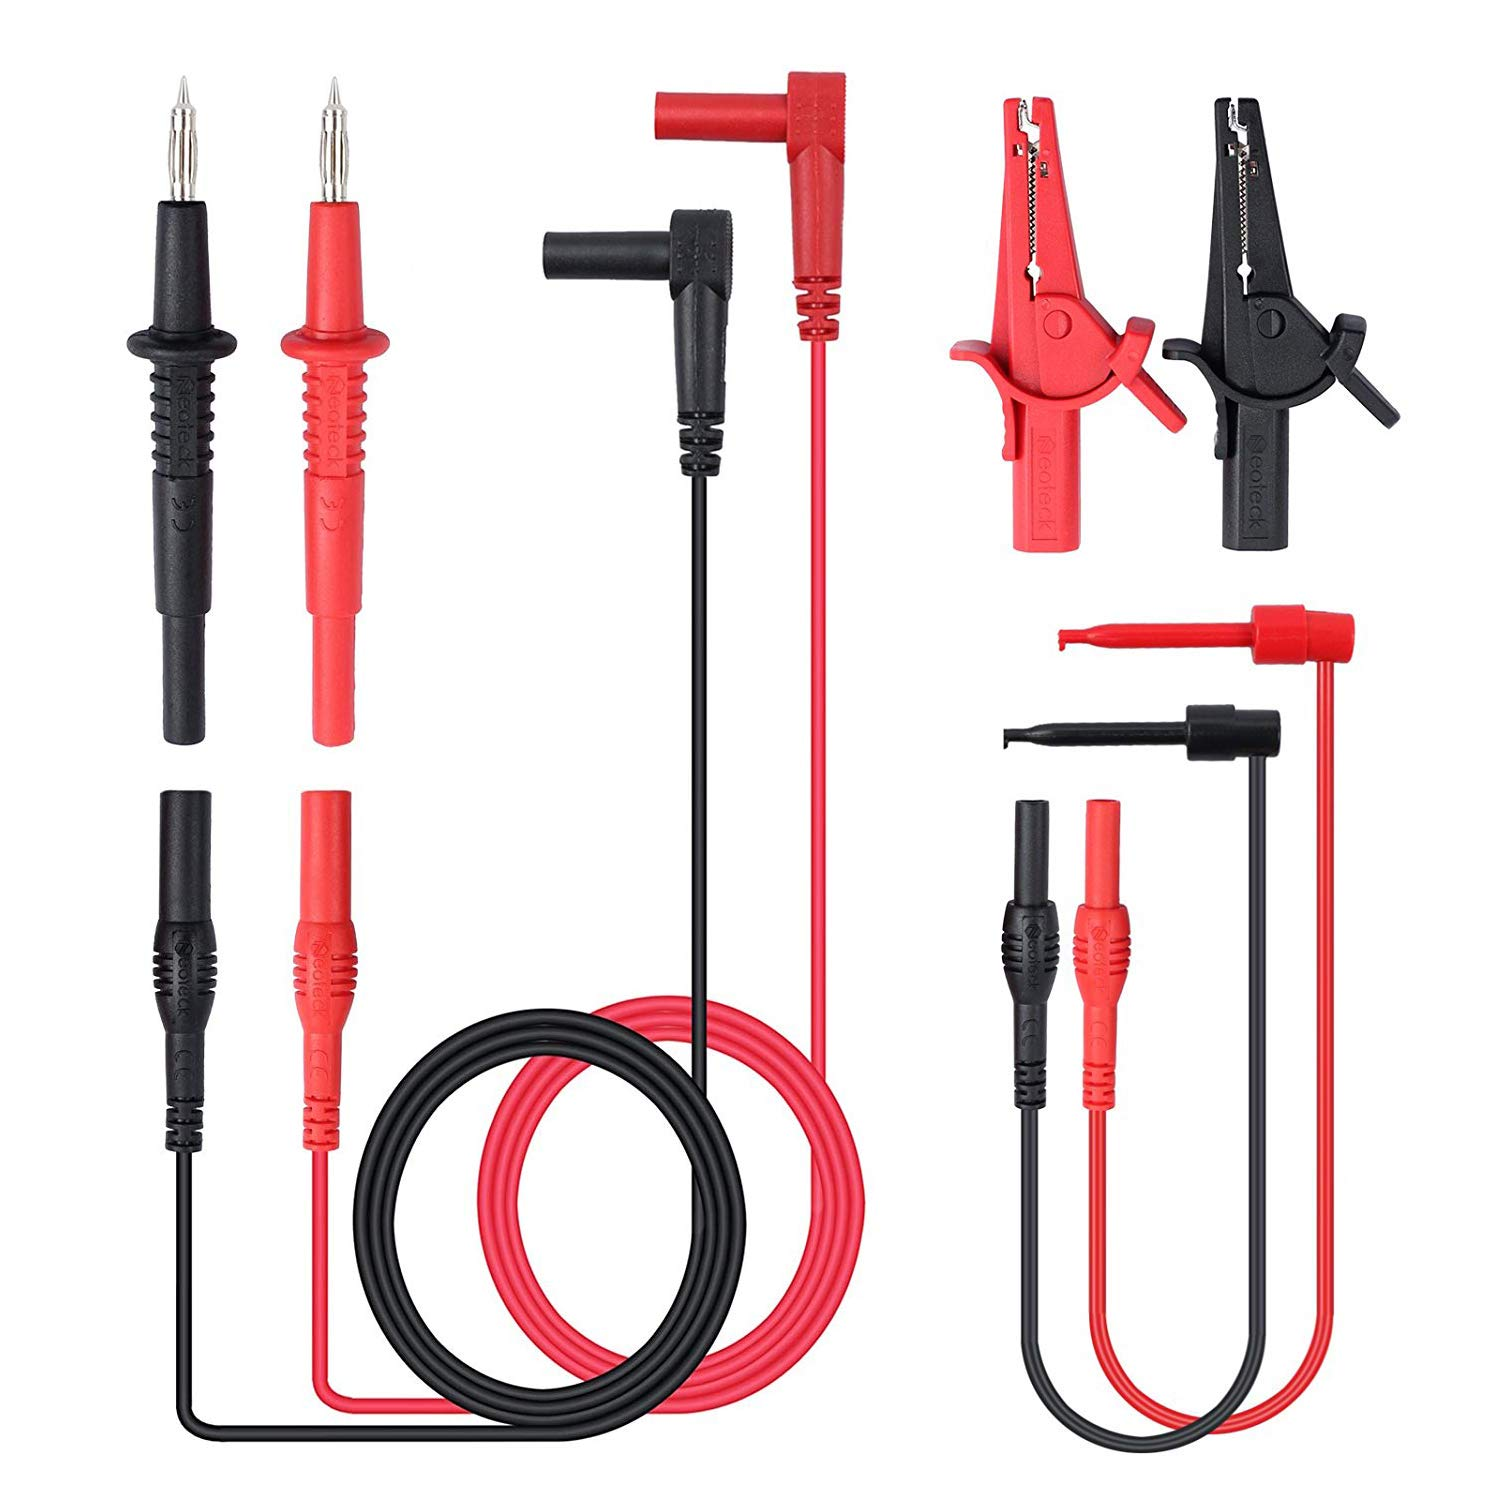 8 Pieces Multimeter Electronic Professional Test Lead Kit//Multimeter Accessory Kit Includes Lead Extensions Test Probes Mini Hooks Alligator Clips for School Factory and other Social Fields